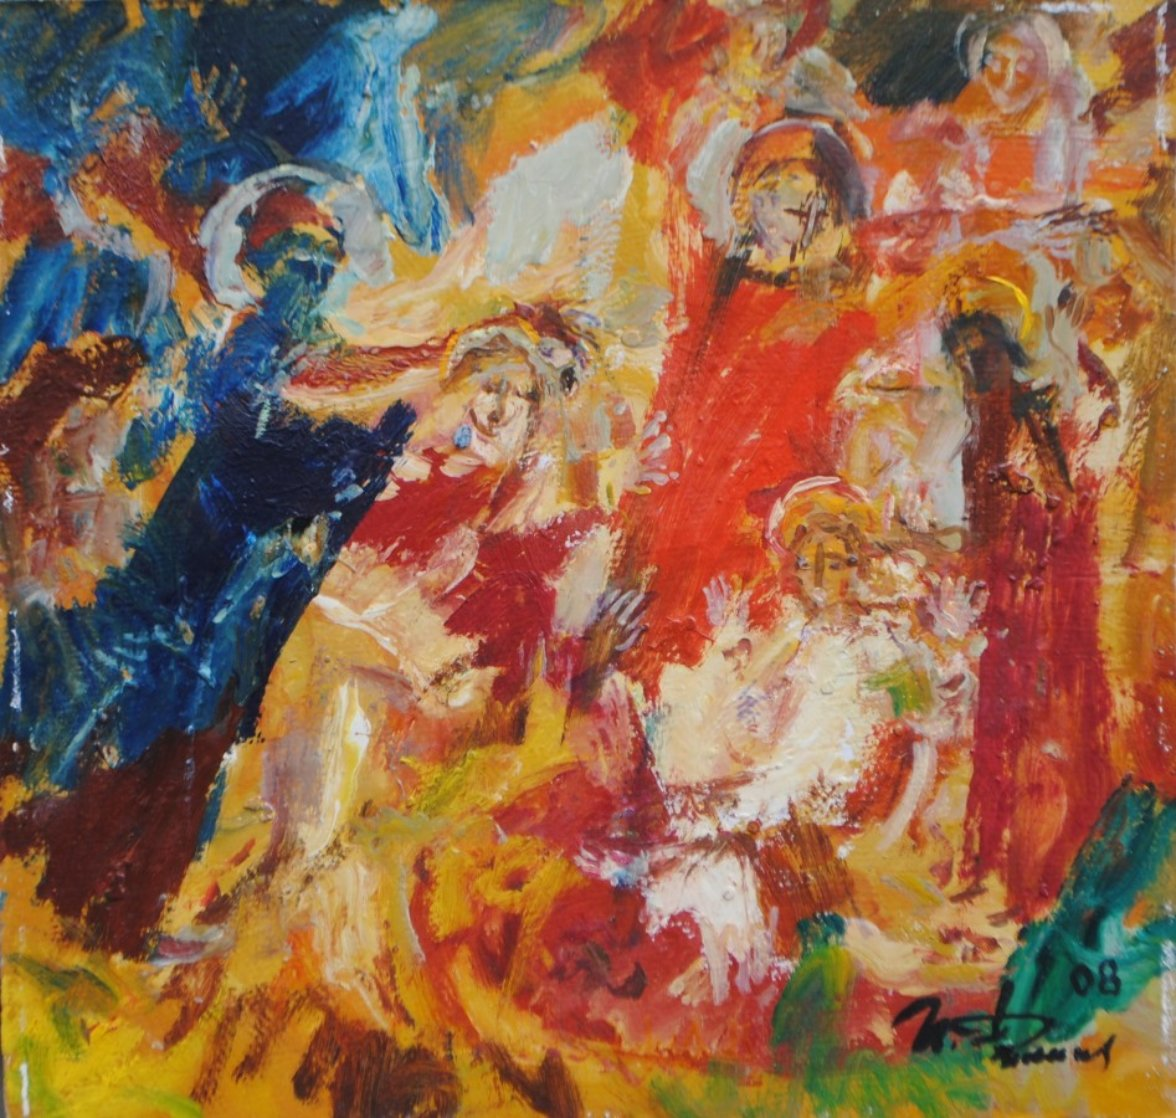 Christ And Angels 2008 15x16 Original Painting by Ivan Filichev